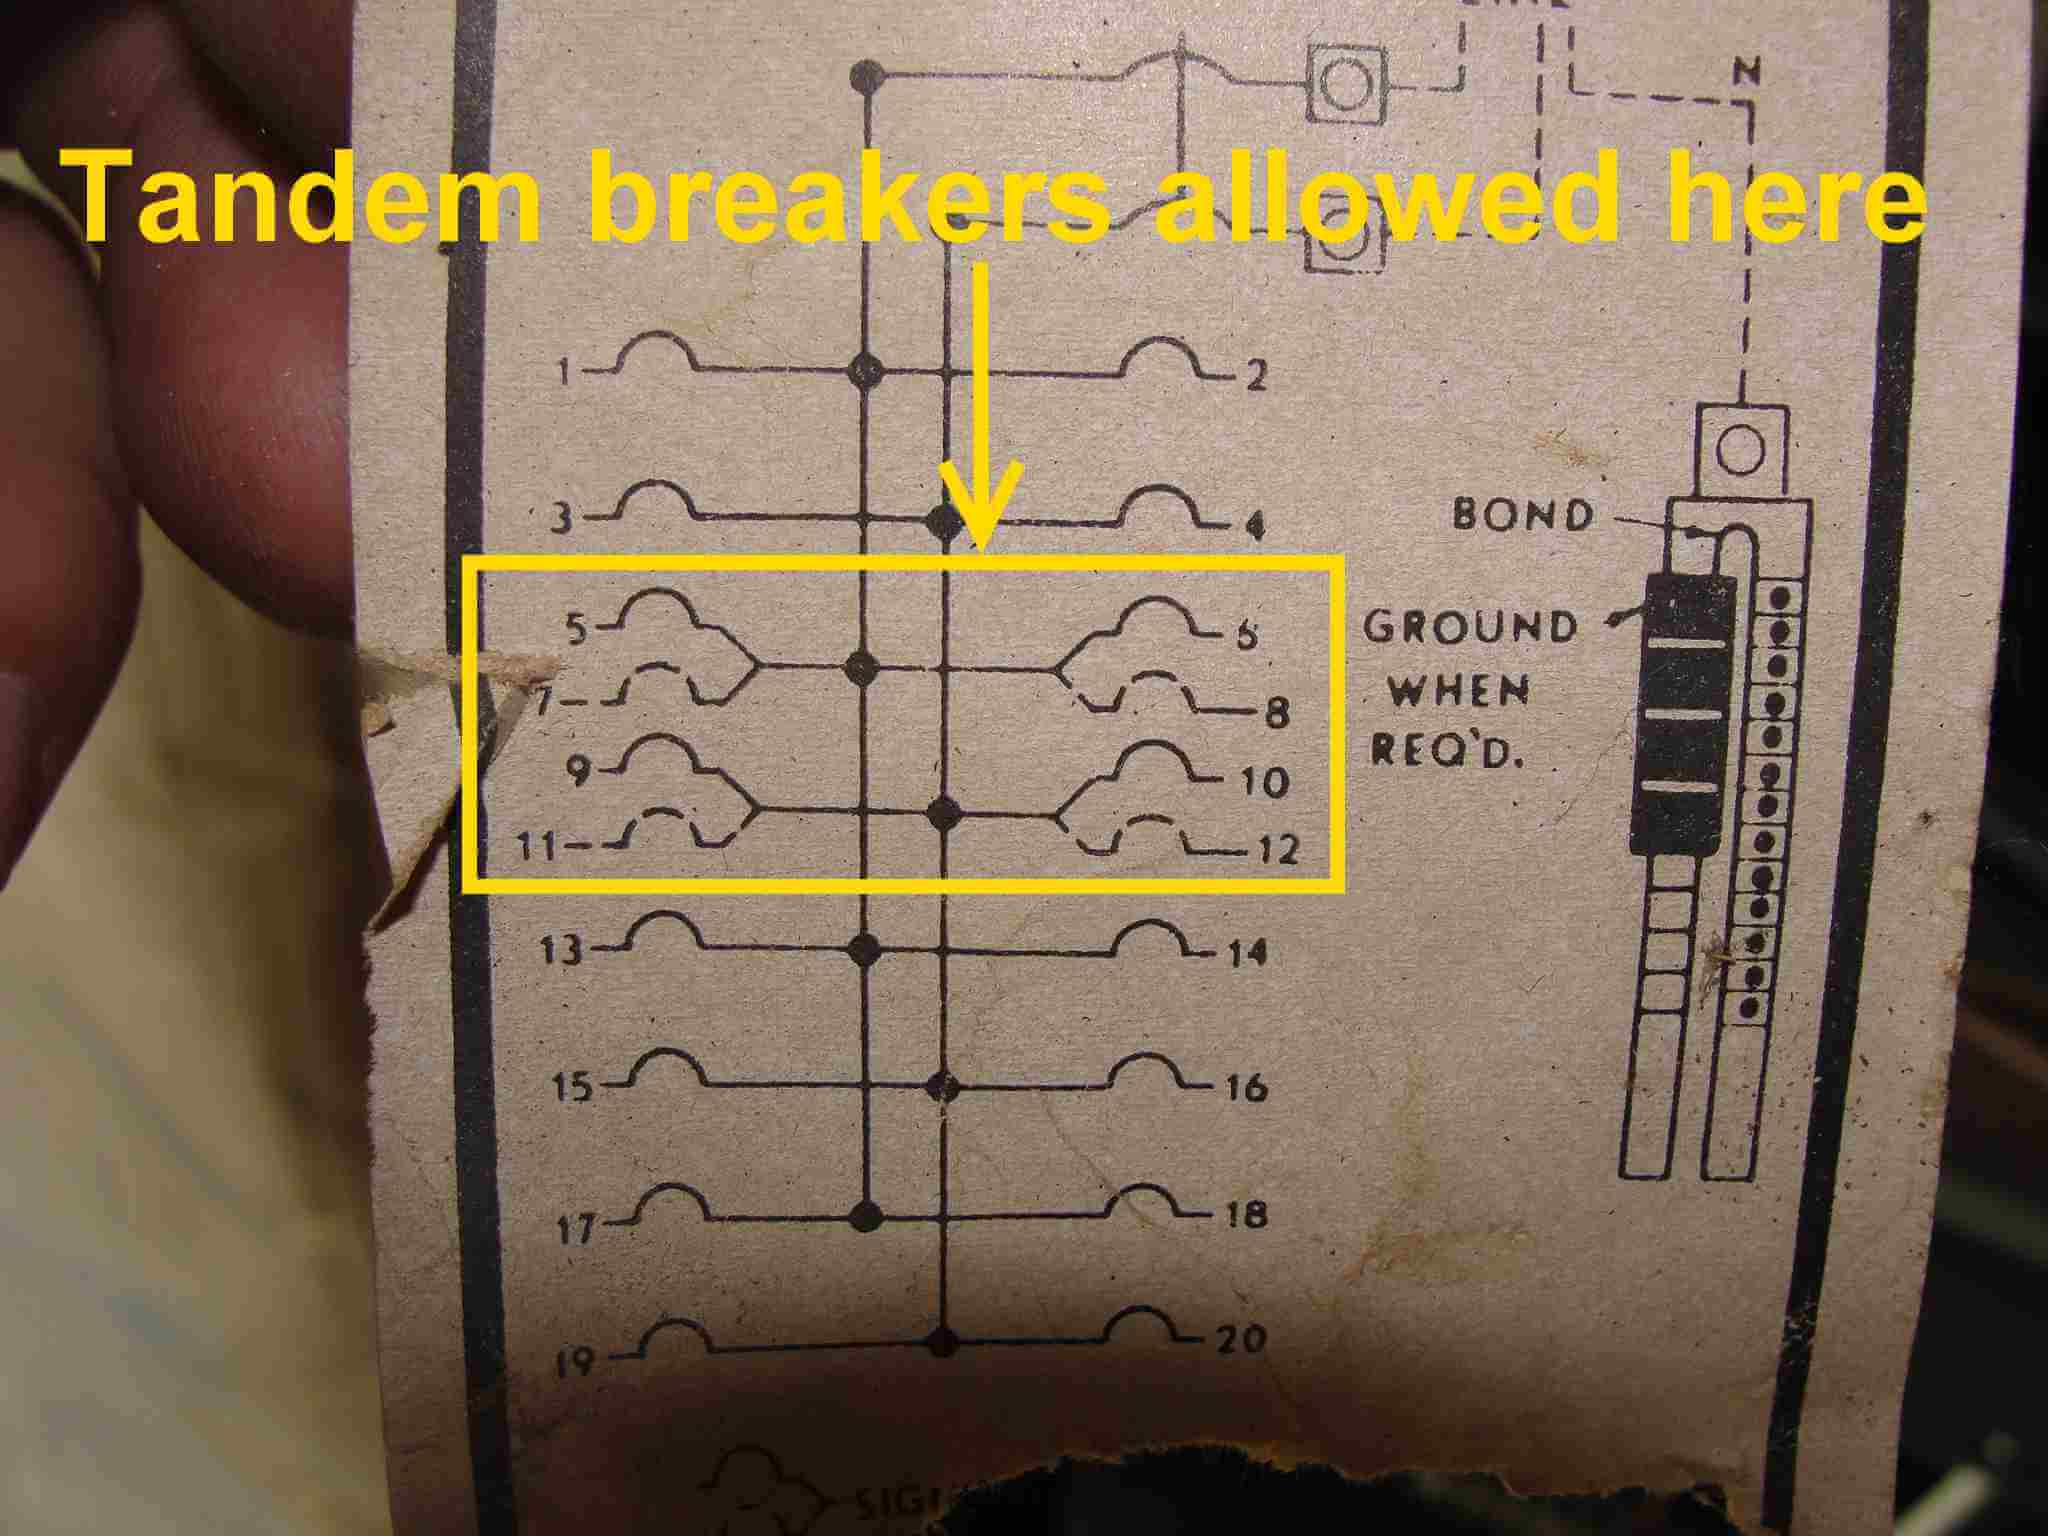 panelboard diagram 2 how to know when tandem circuit breakers can be used (aka panel board wiring diagram at crackthecode.co